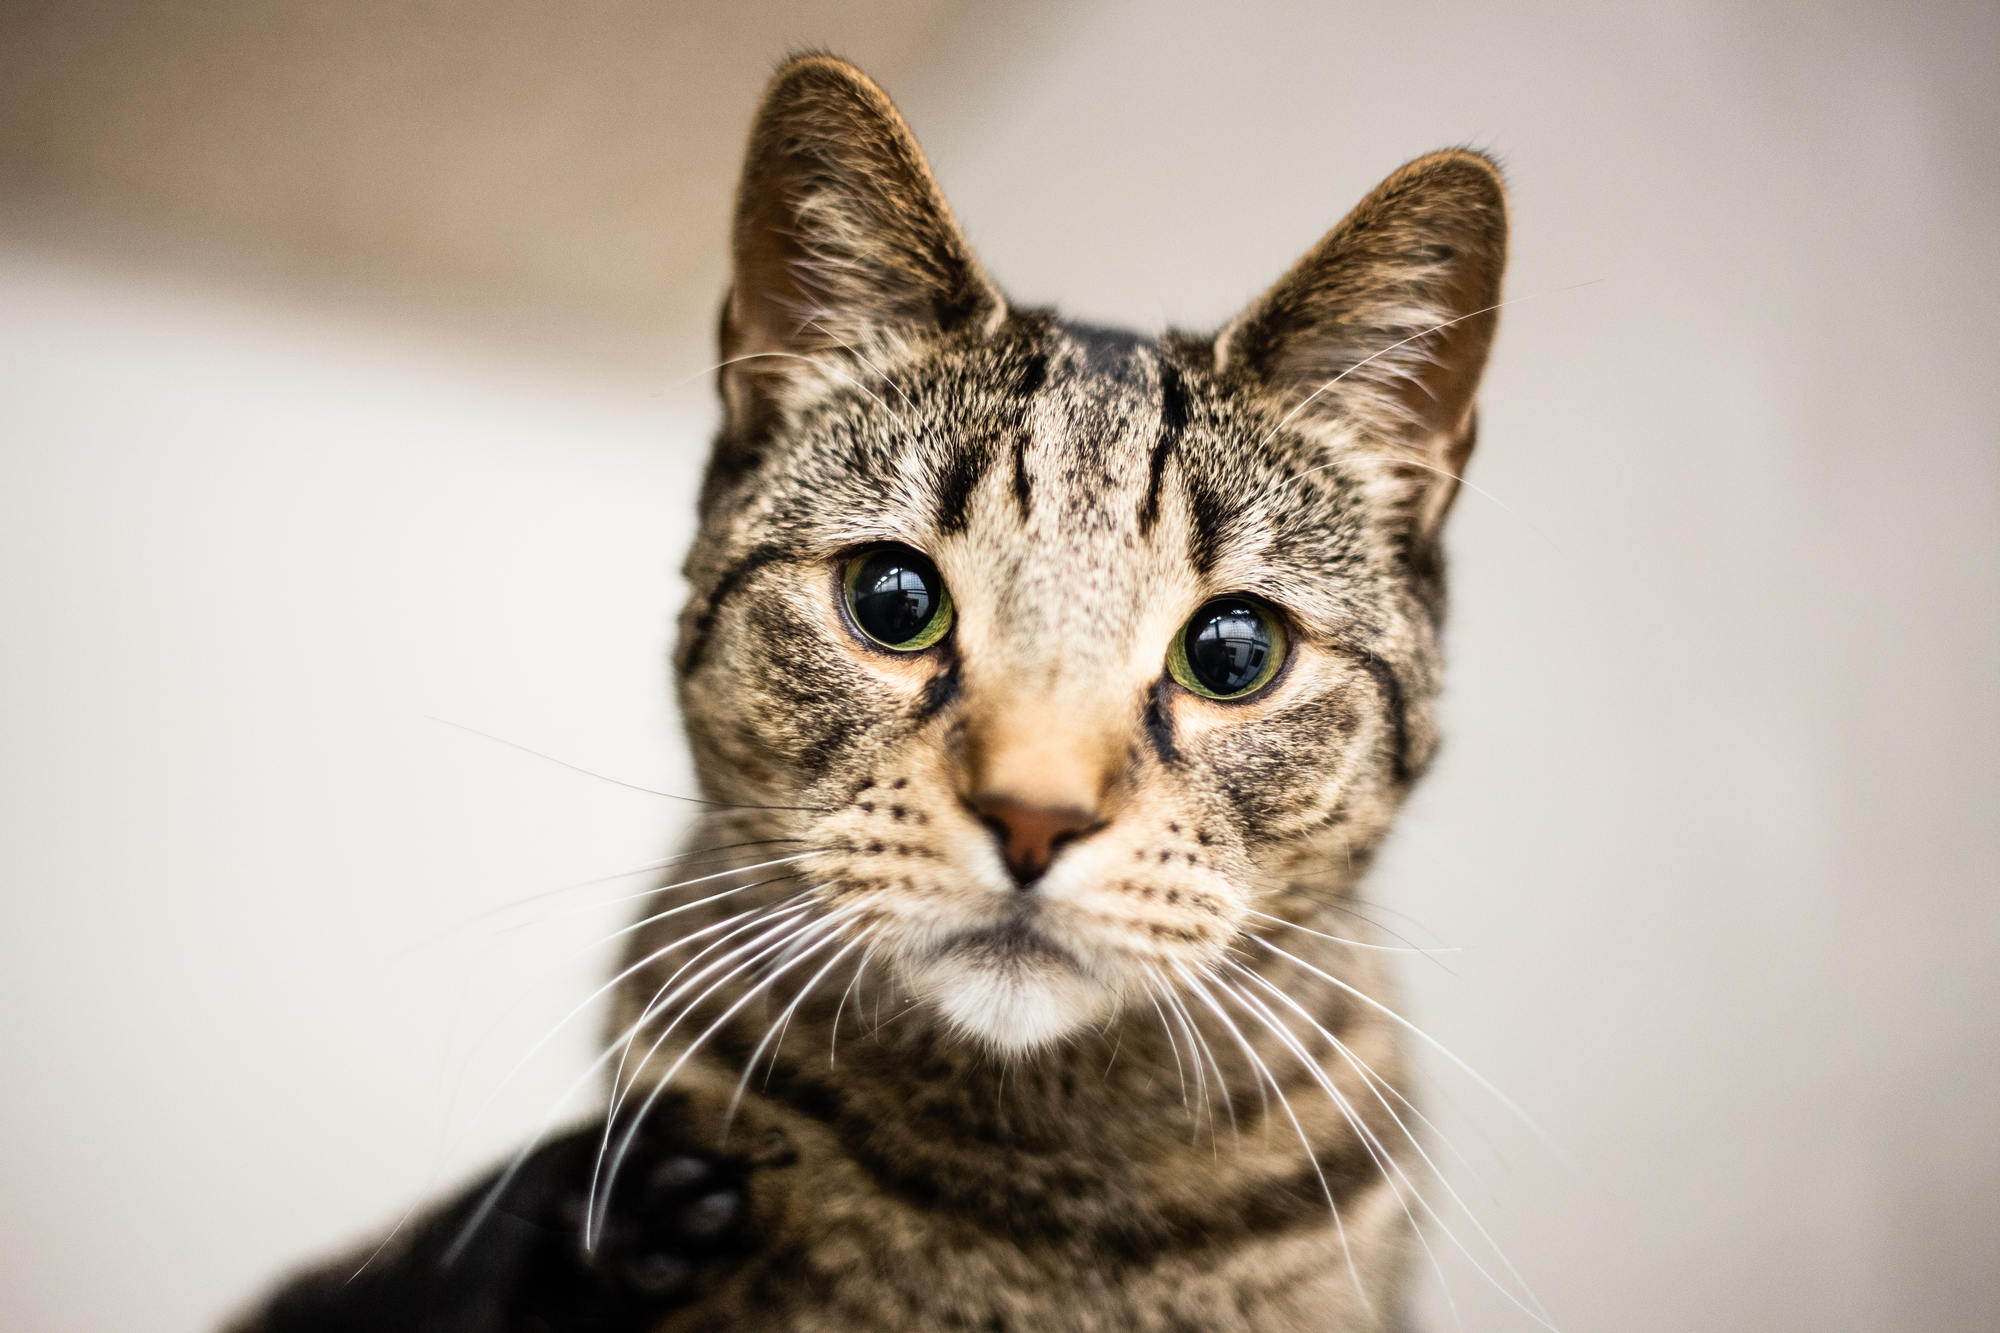 pet-photography-copenhagen-cat-adoption-dyrevaernet-2